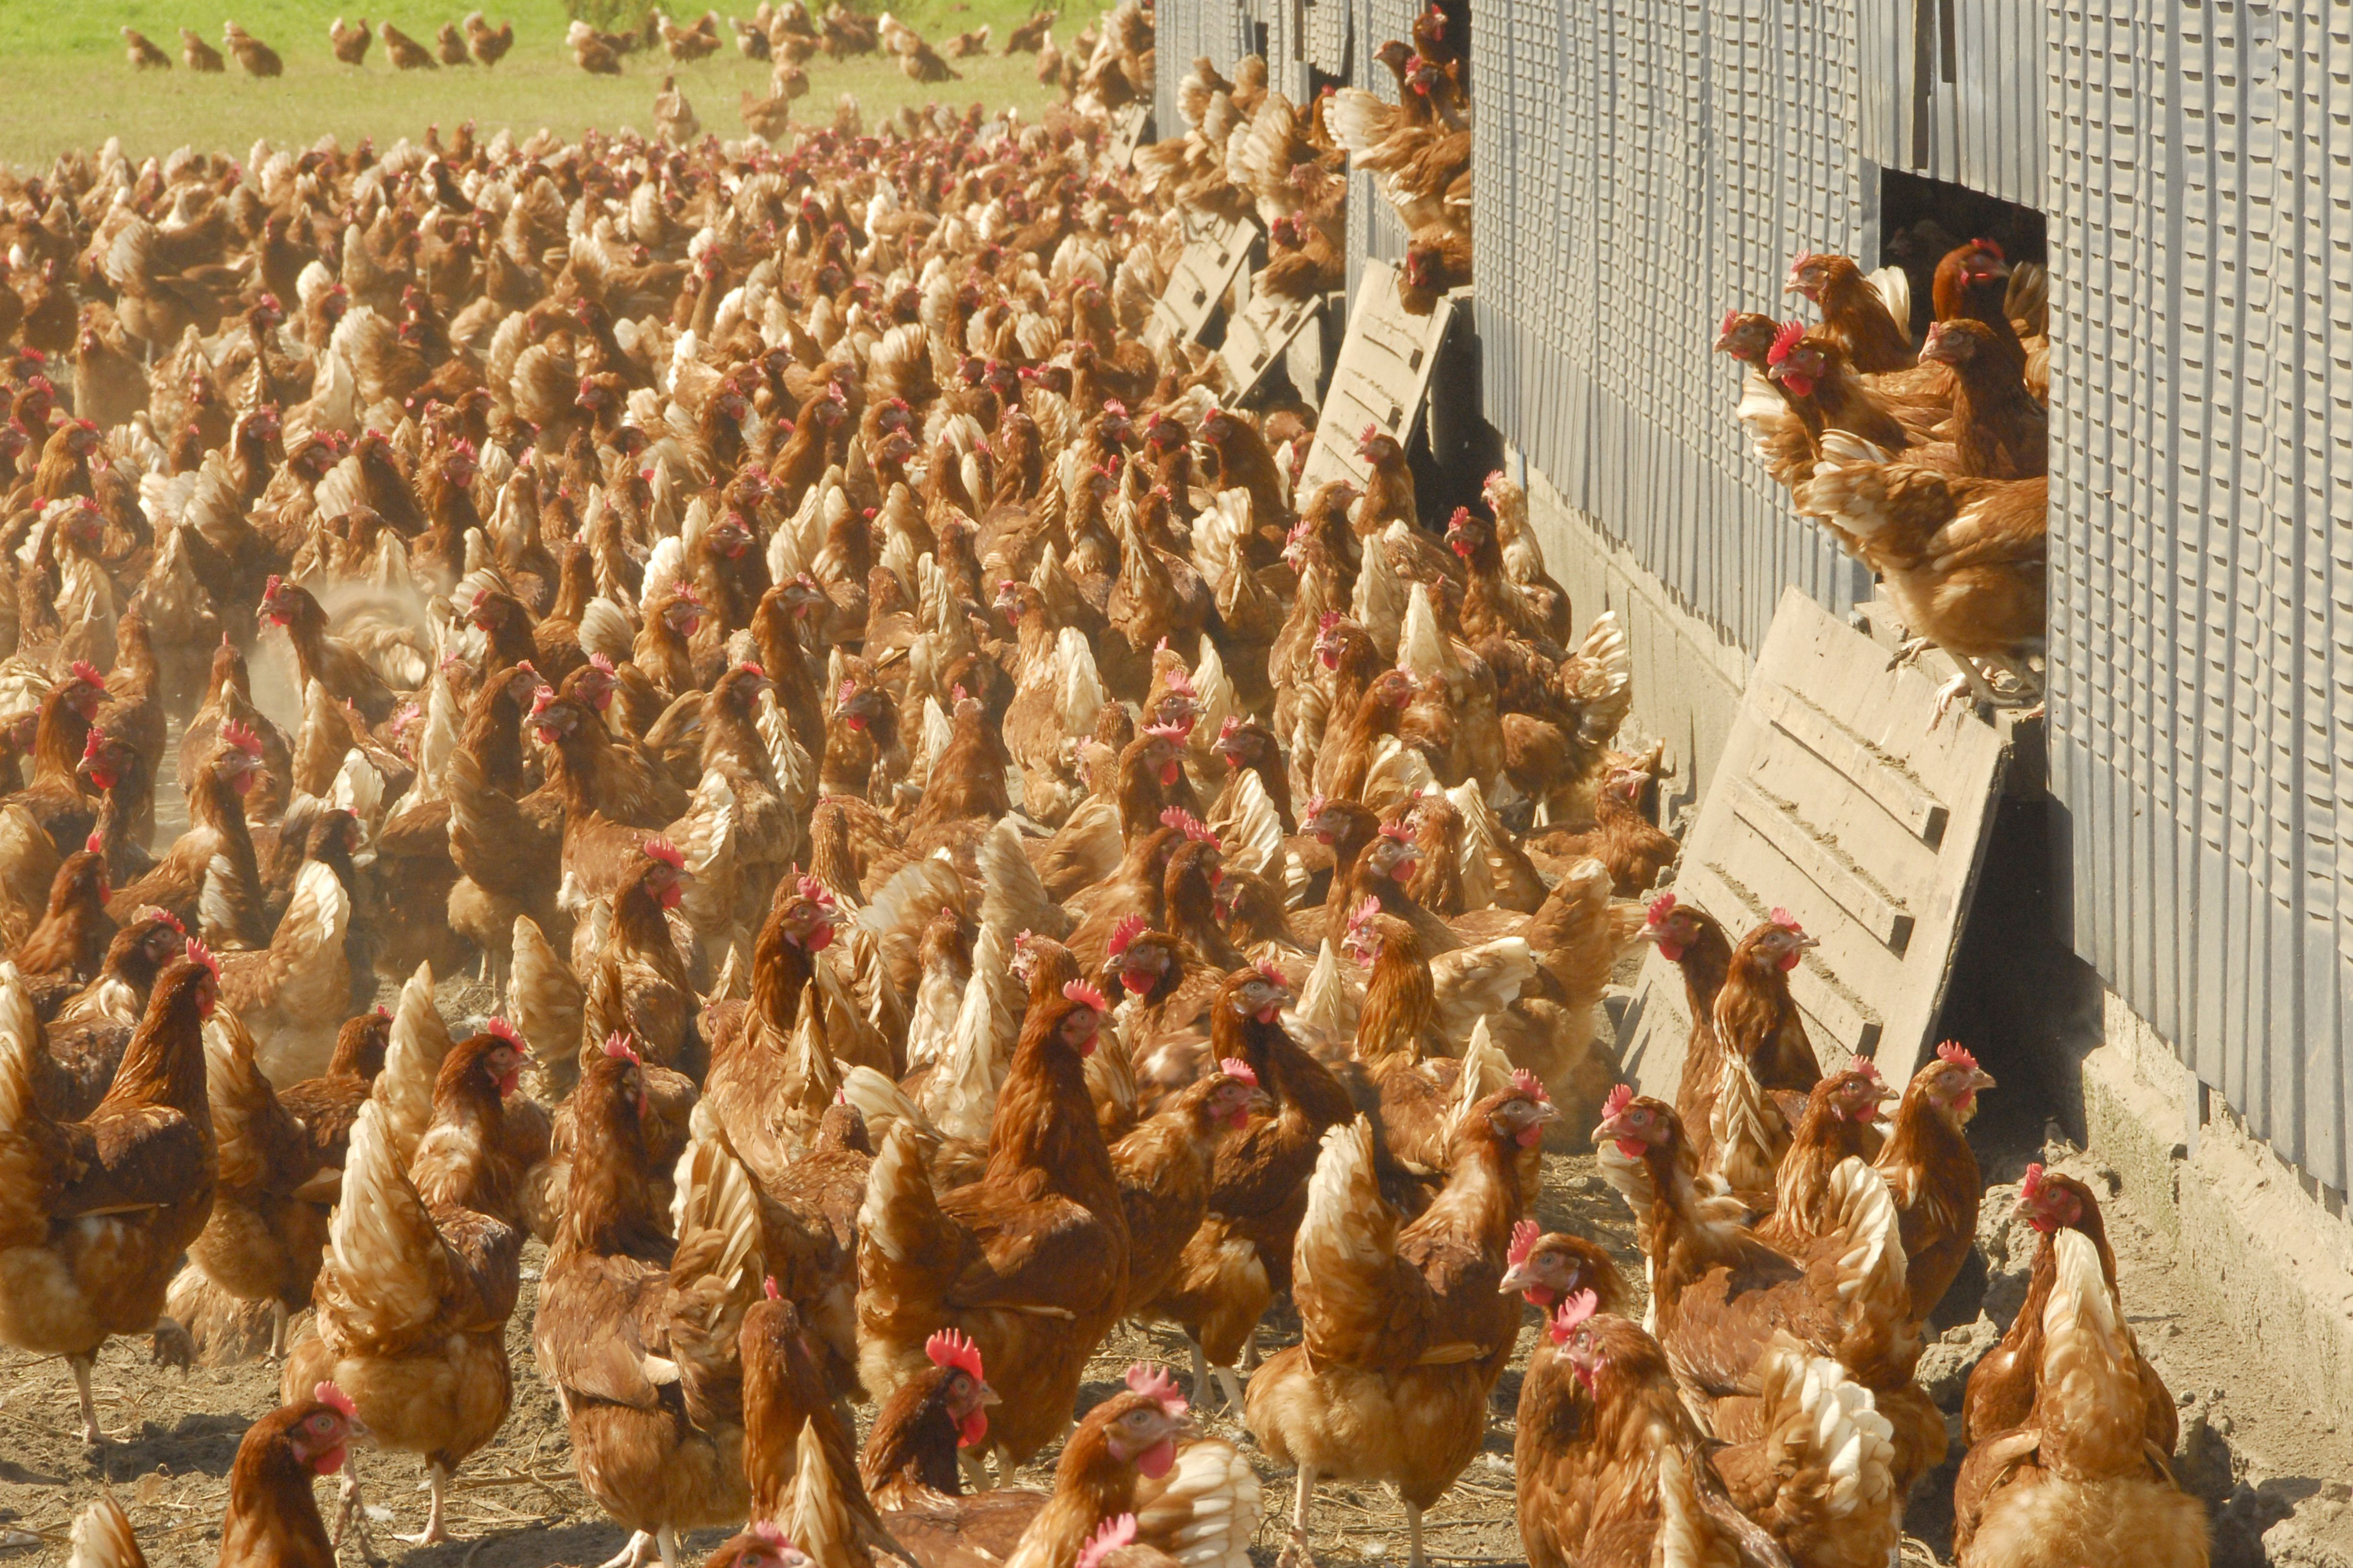 Poultry gatherings can resume in all areas outside the remaining AIPZ, but poultry from the affected districts of Lancashire, Cumbria and Merseyside will not be able to attend. Photo: Broker/Rex/Shutterstock